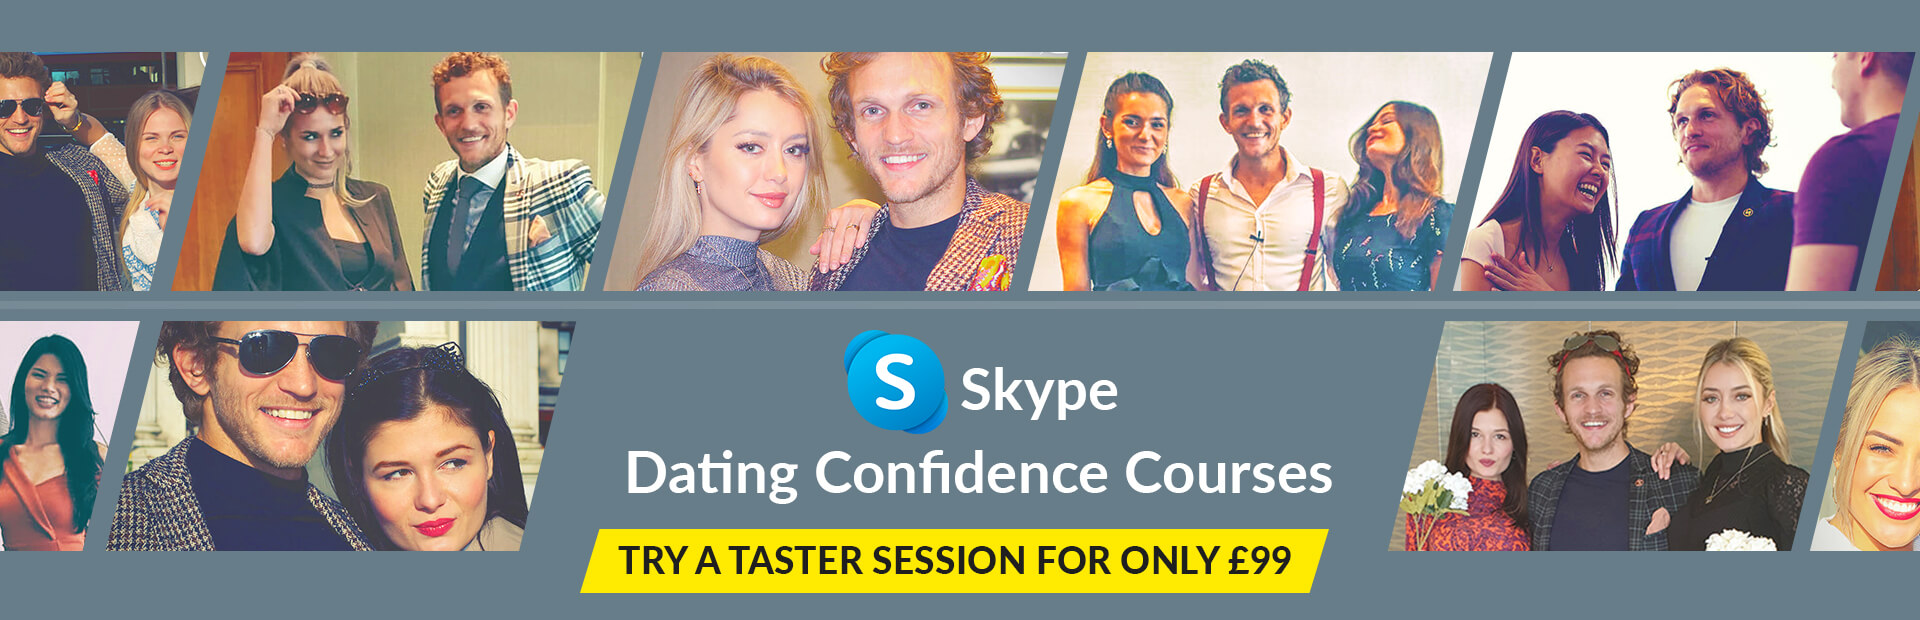 Skype dating confidence courses for men banner with attractive models